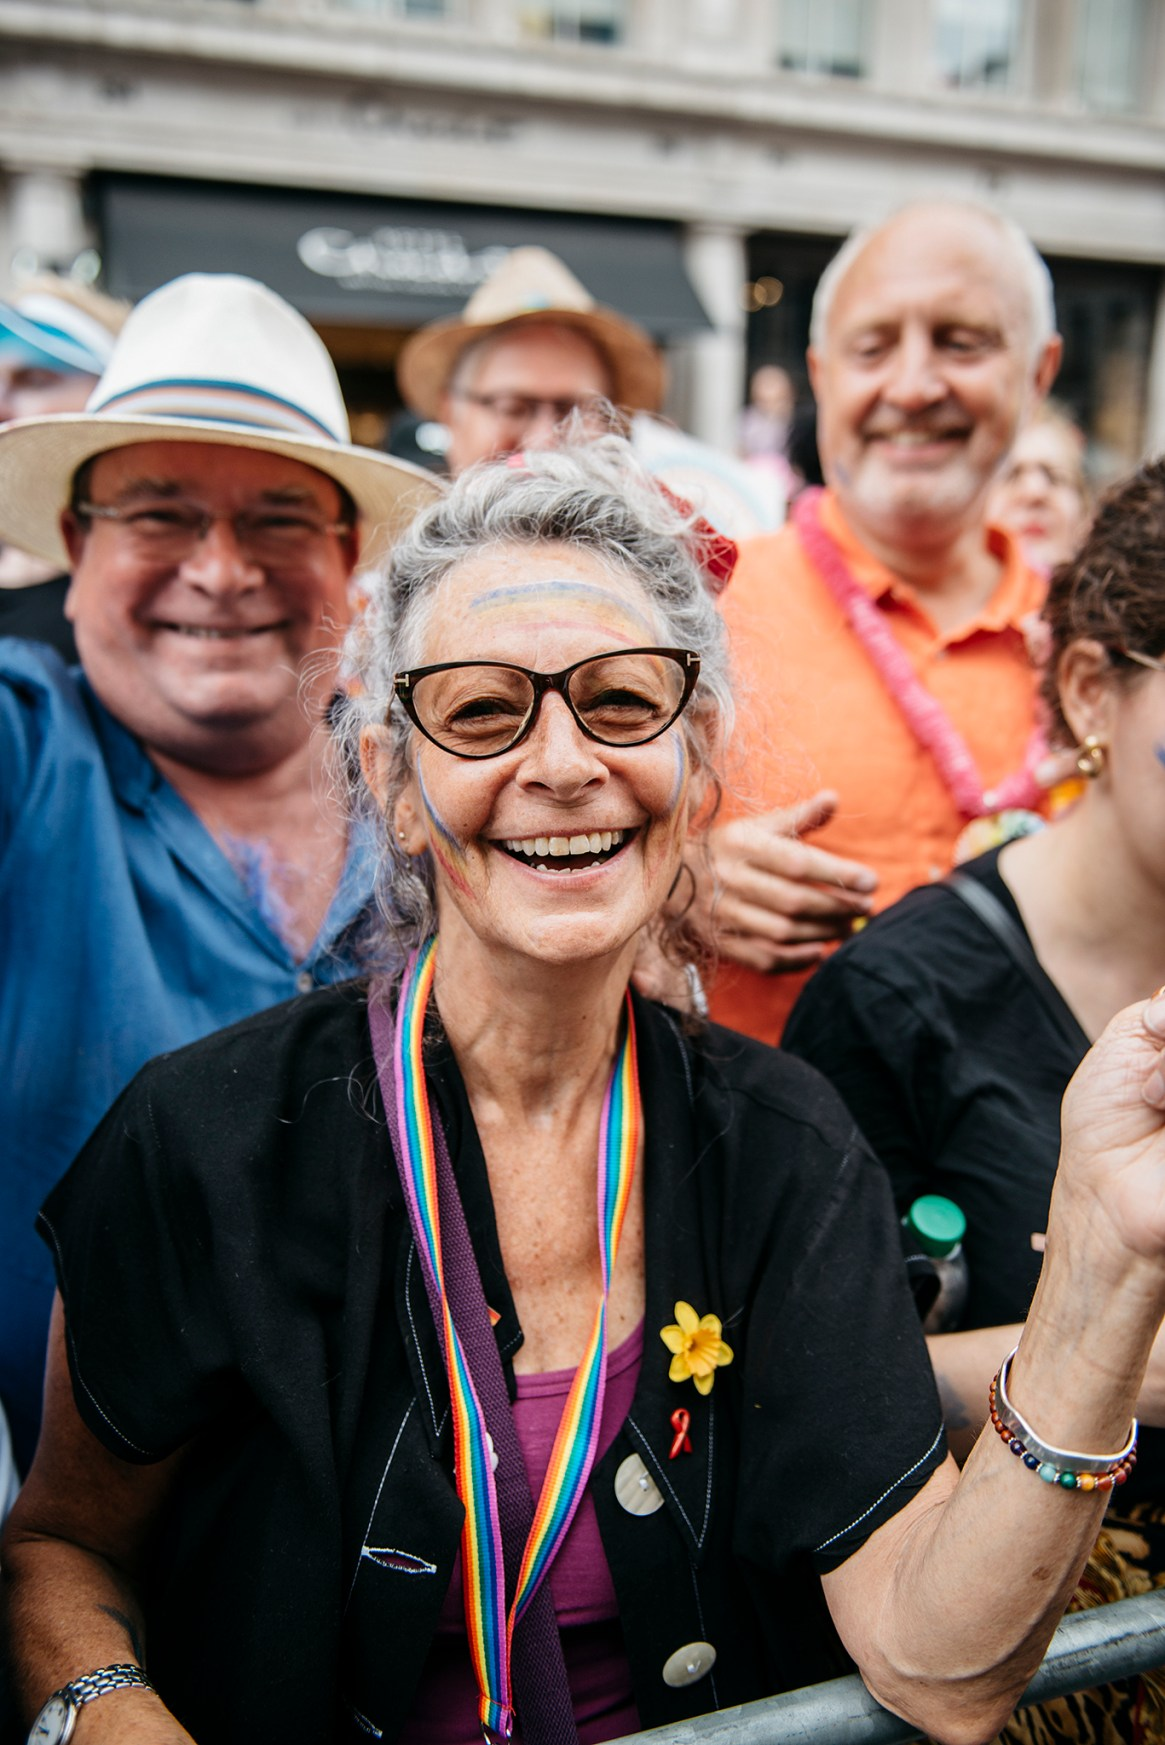 A woman smiles and poses with her friends as they watch the passing Pride in London parade, 2019